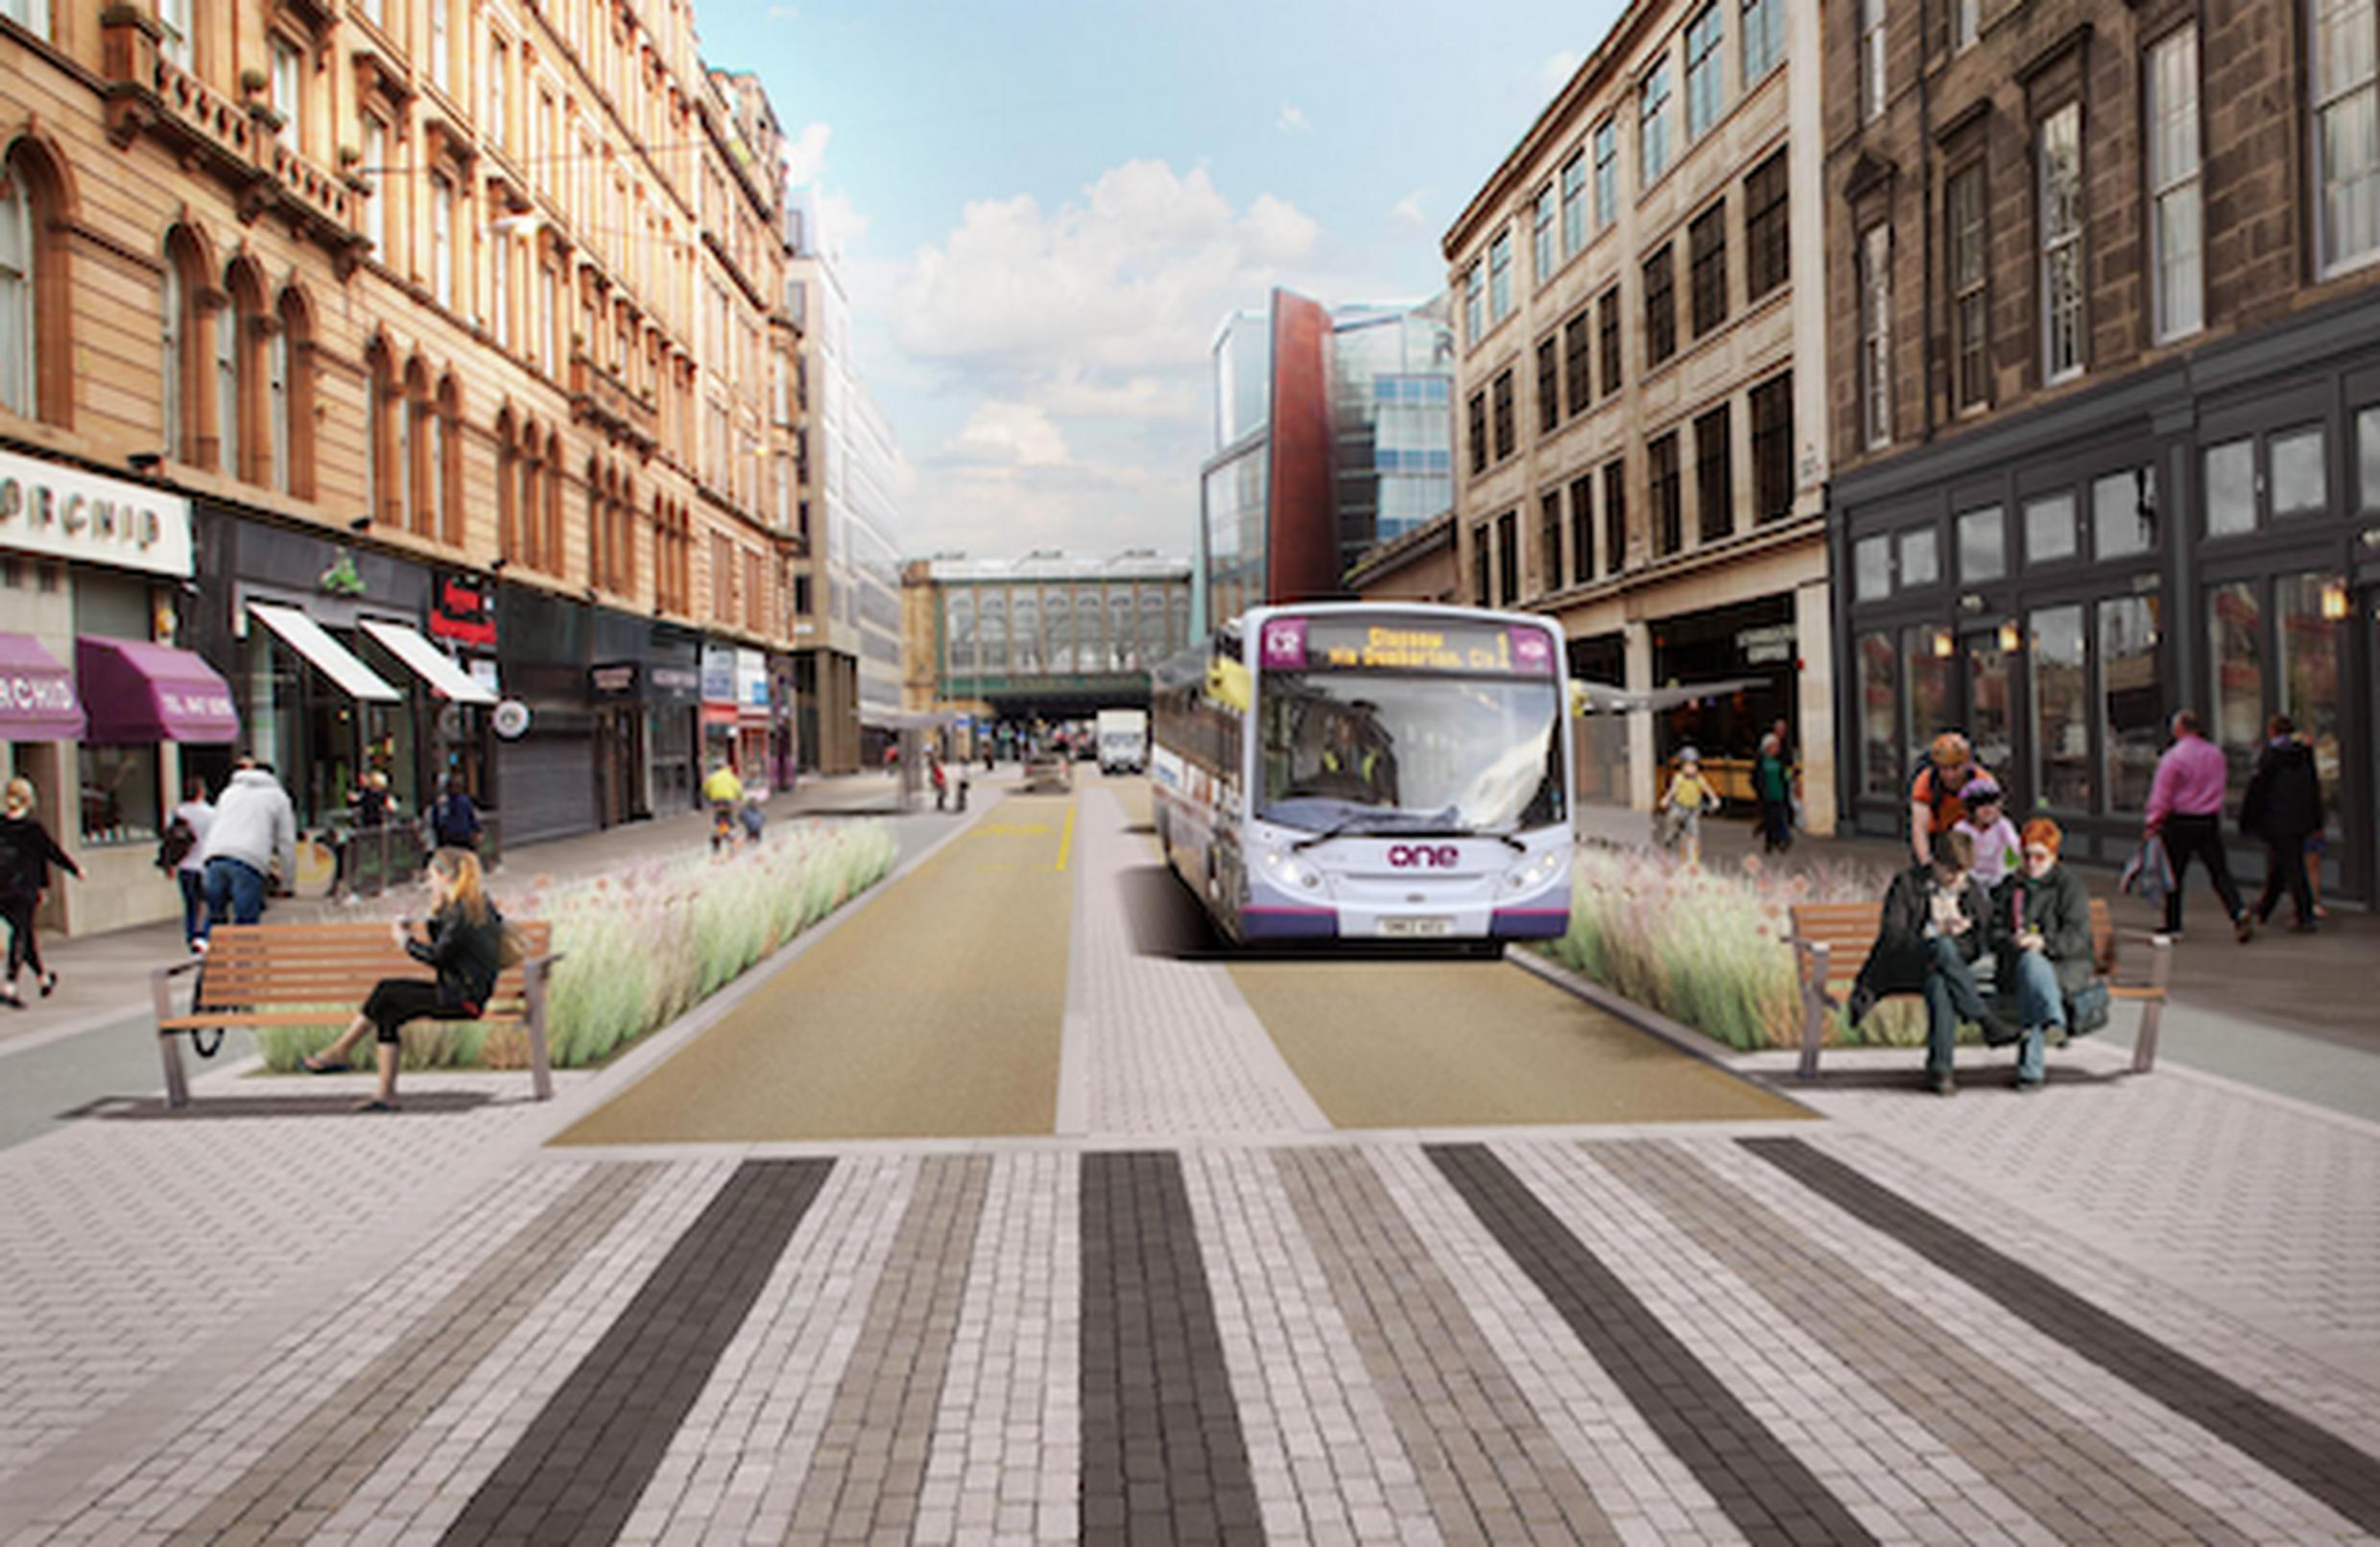 How the Argylle Street area could look